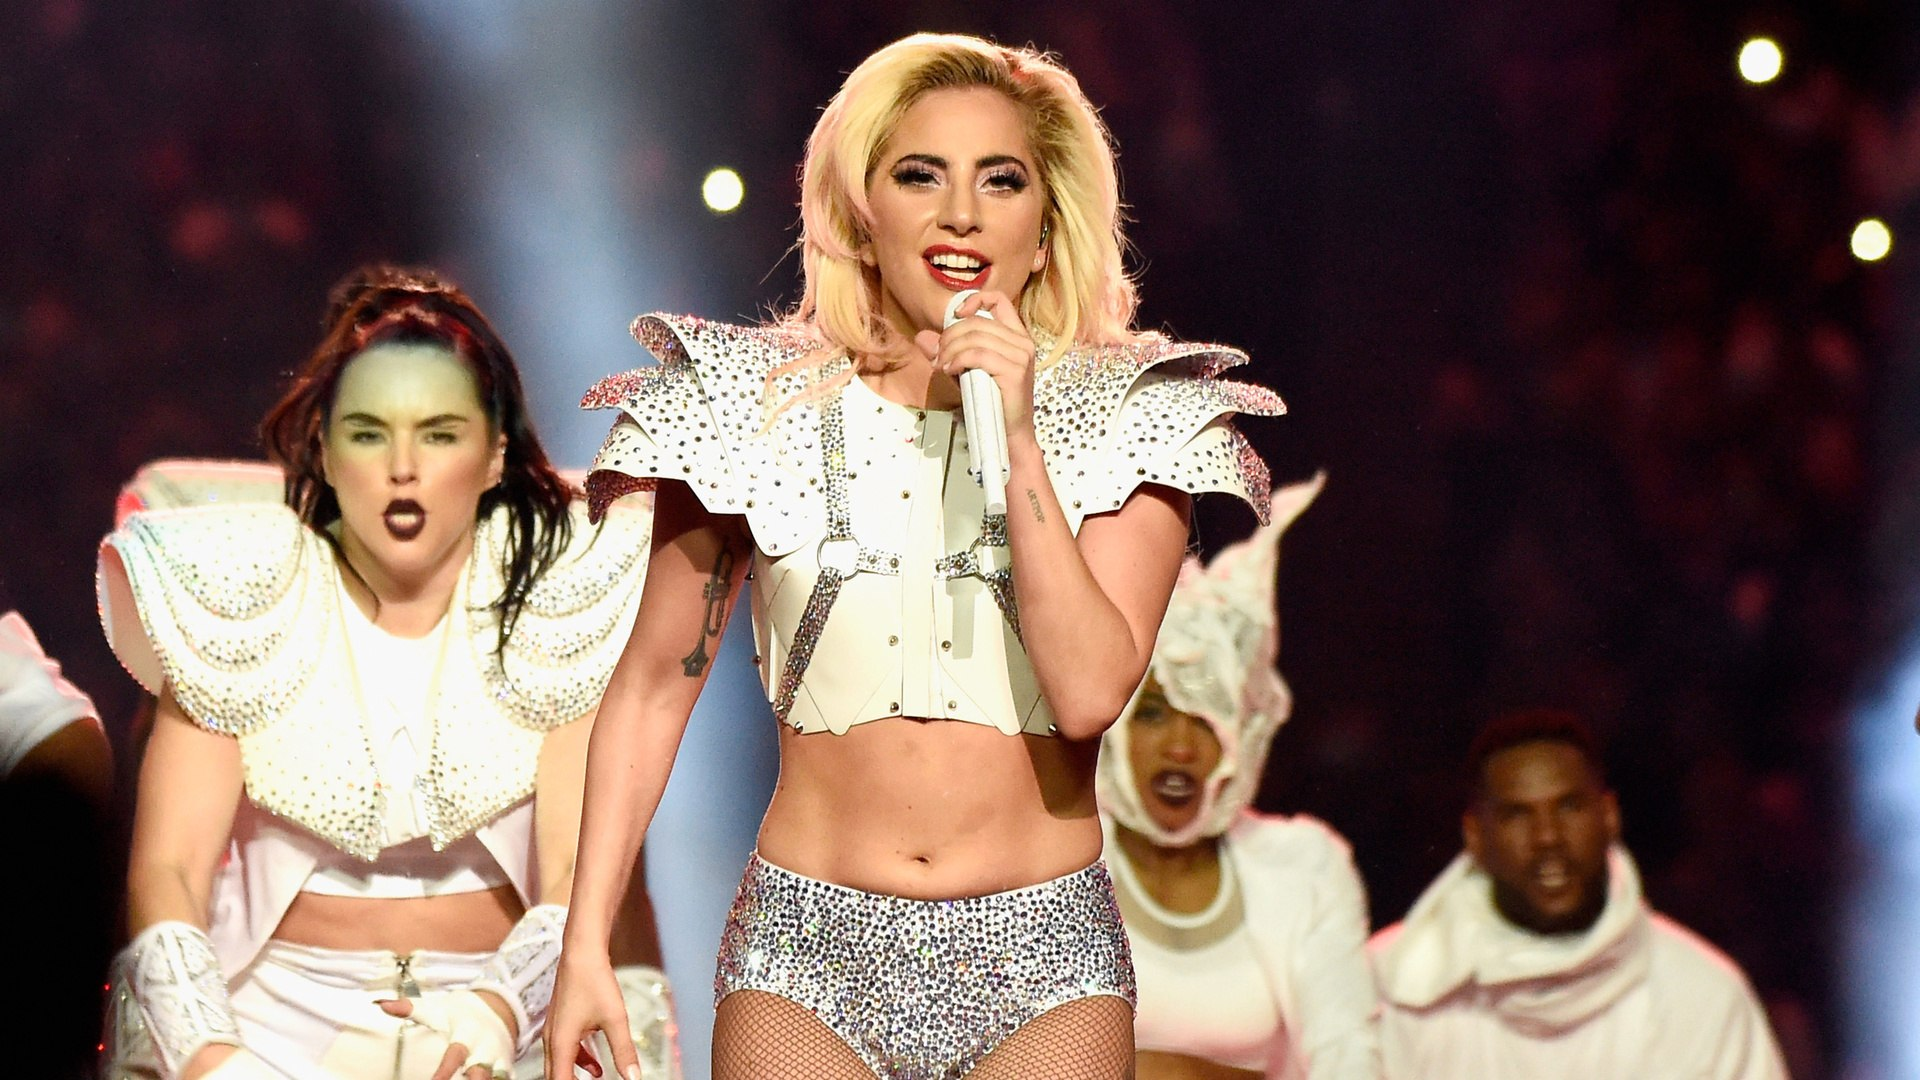 Lady Gaga's Super Bowl Show Gets Subtly Political and More News